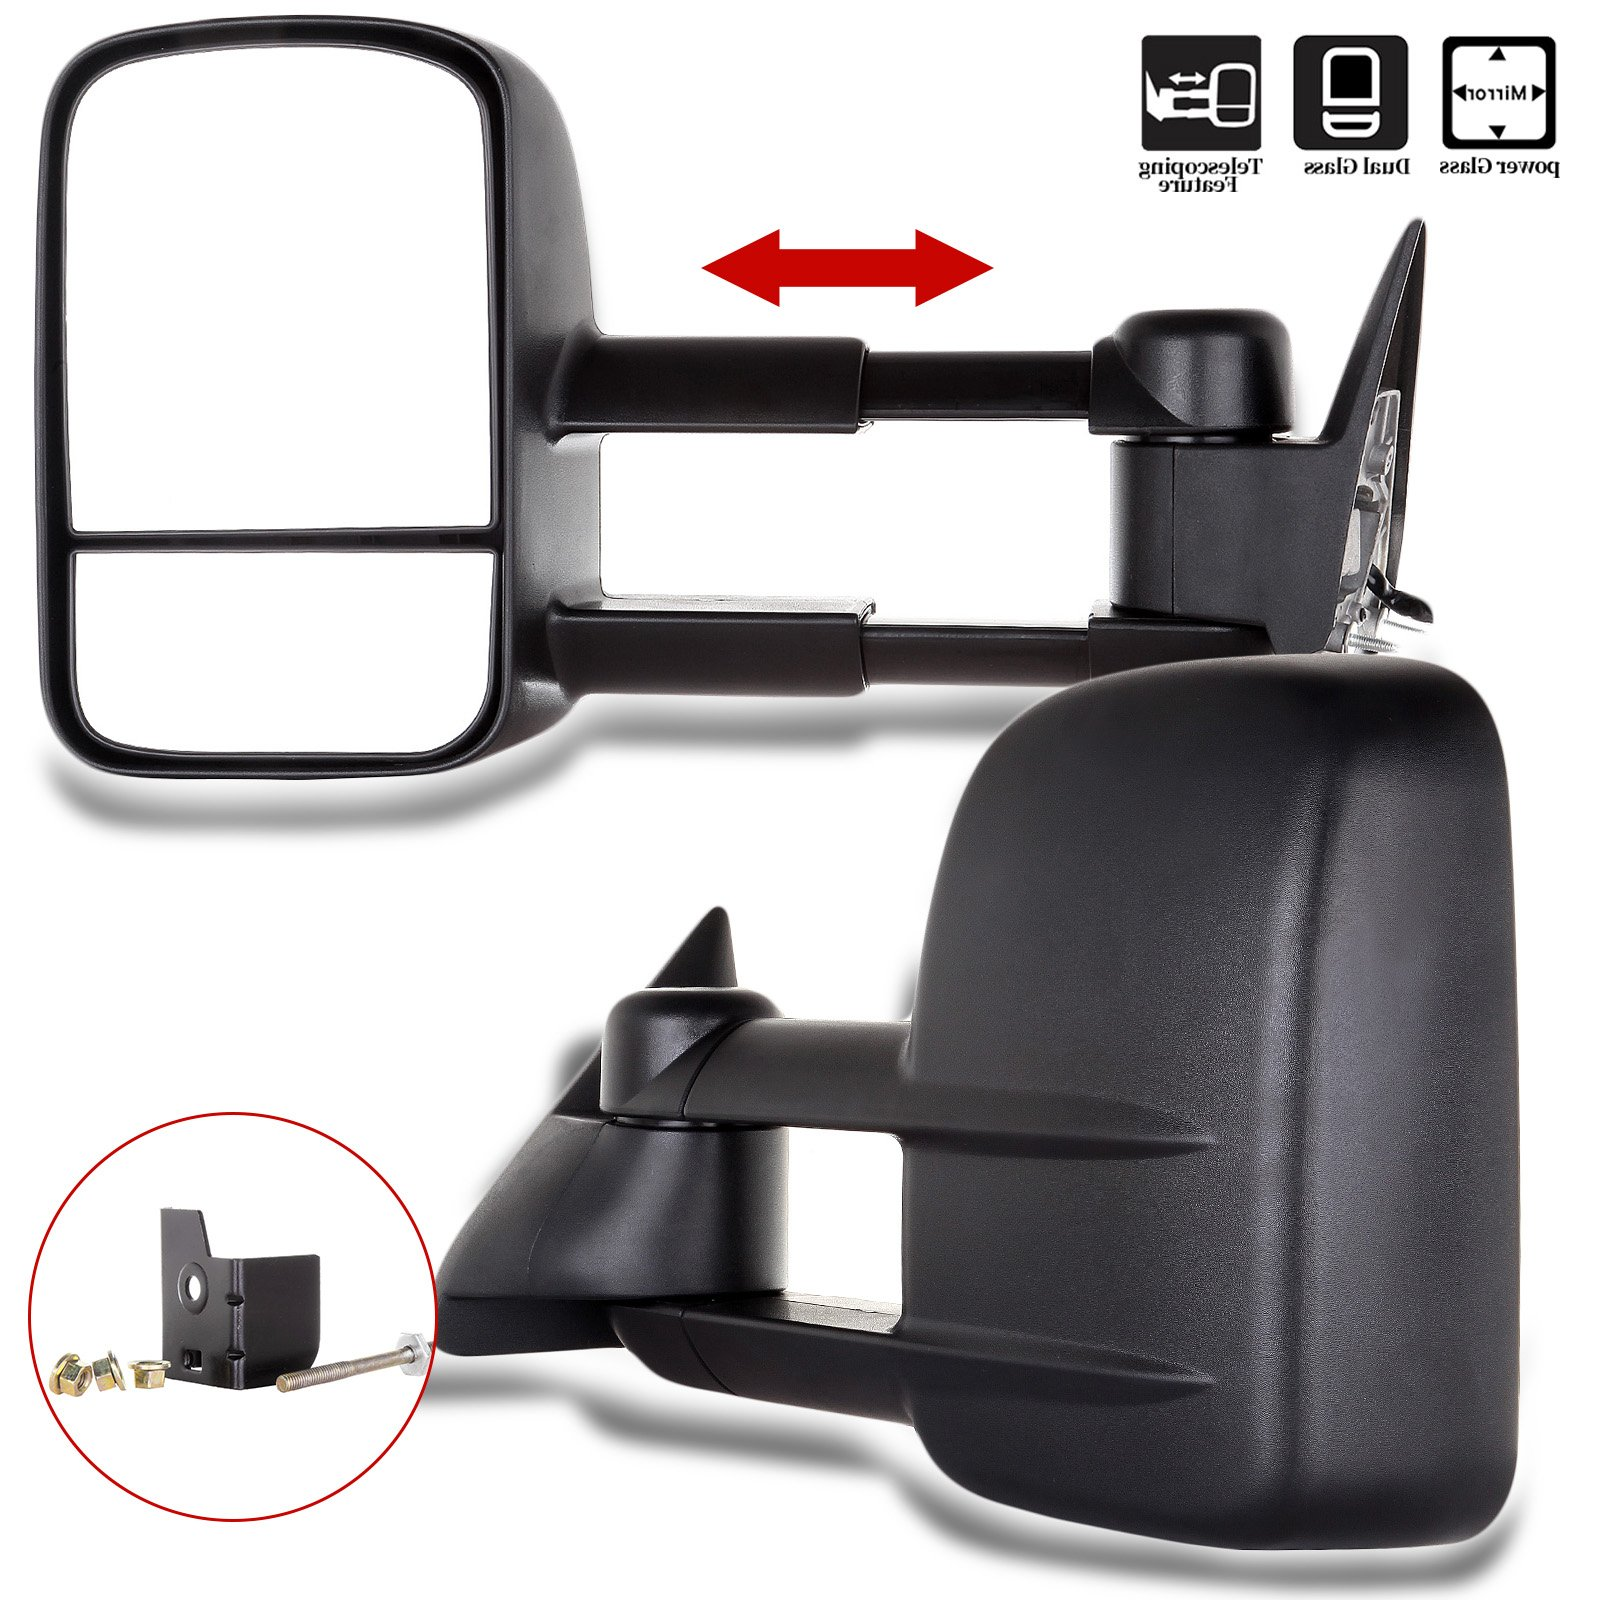 SCITOO Towing Mirrors, fit Chevy GMC Exterior Accessories Mirrors fit C1500 C2500 C3500 K1500 K2500 K3500 1988-1998 with Convex Glass Power Adjusting Manual Telescoping by SCITOO